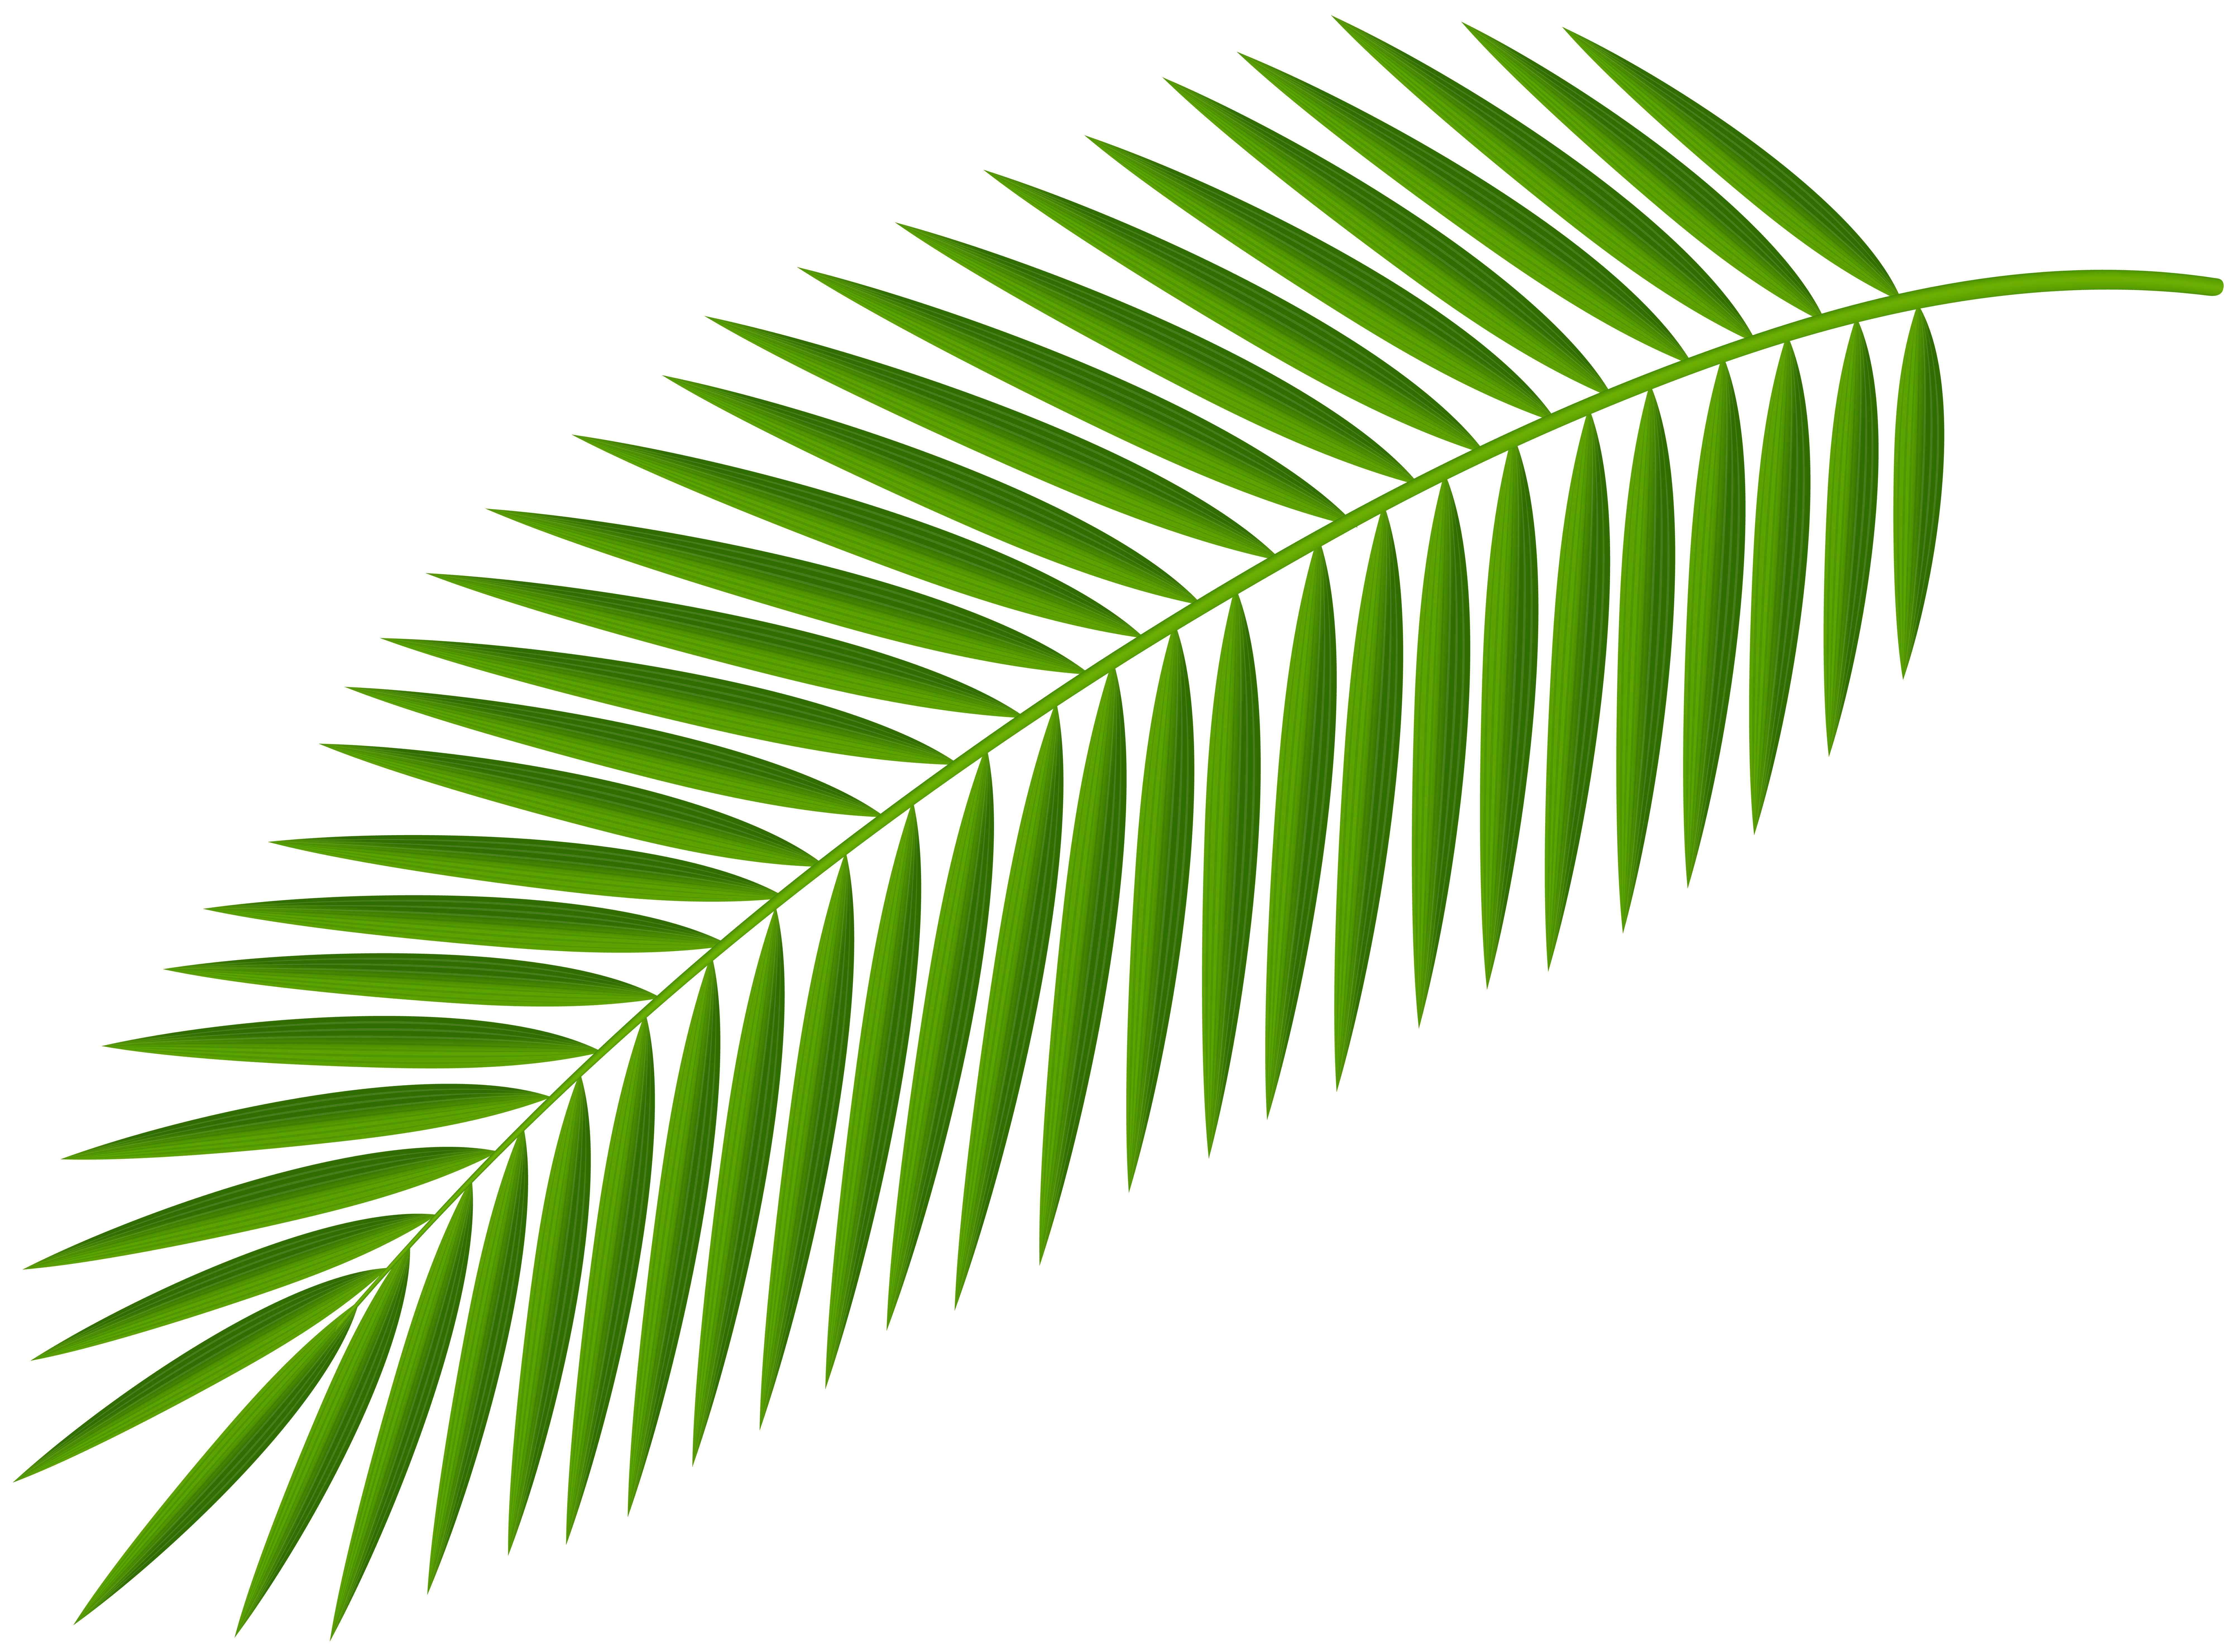 Branch clip art trees. Clipart leaves palm leaves